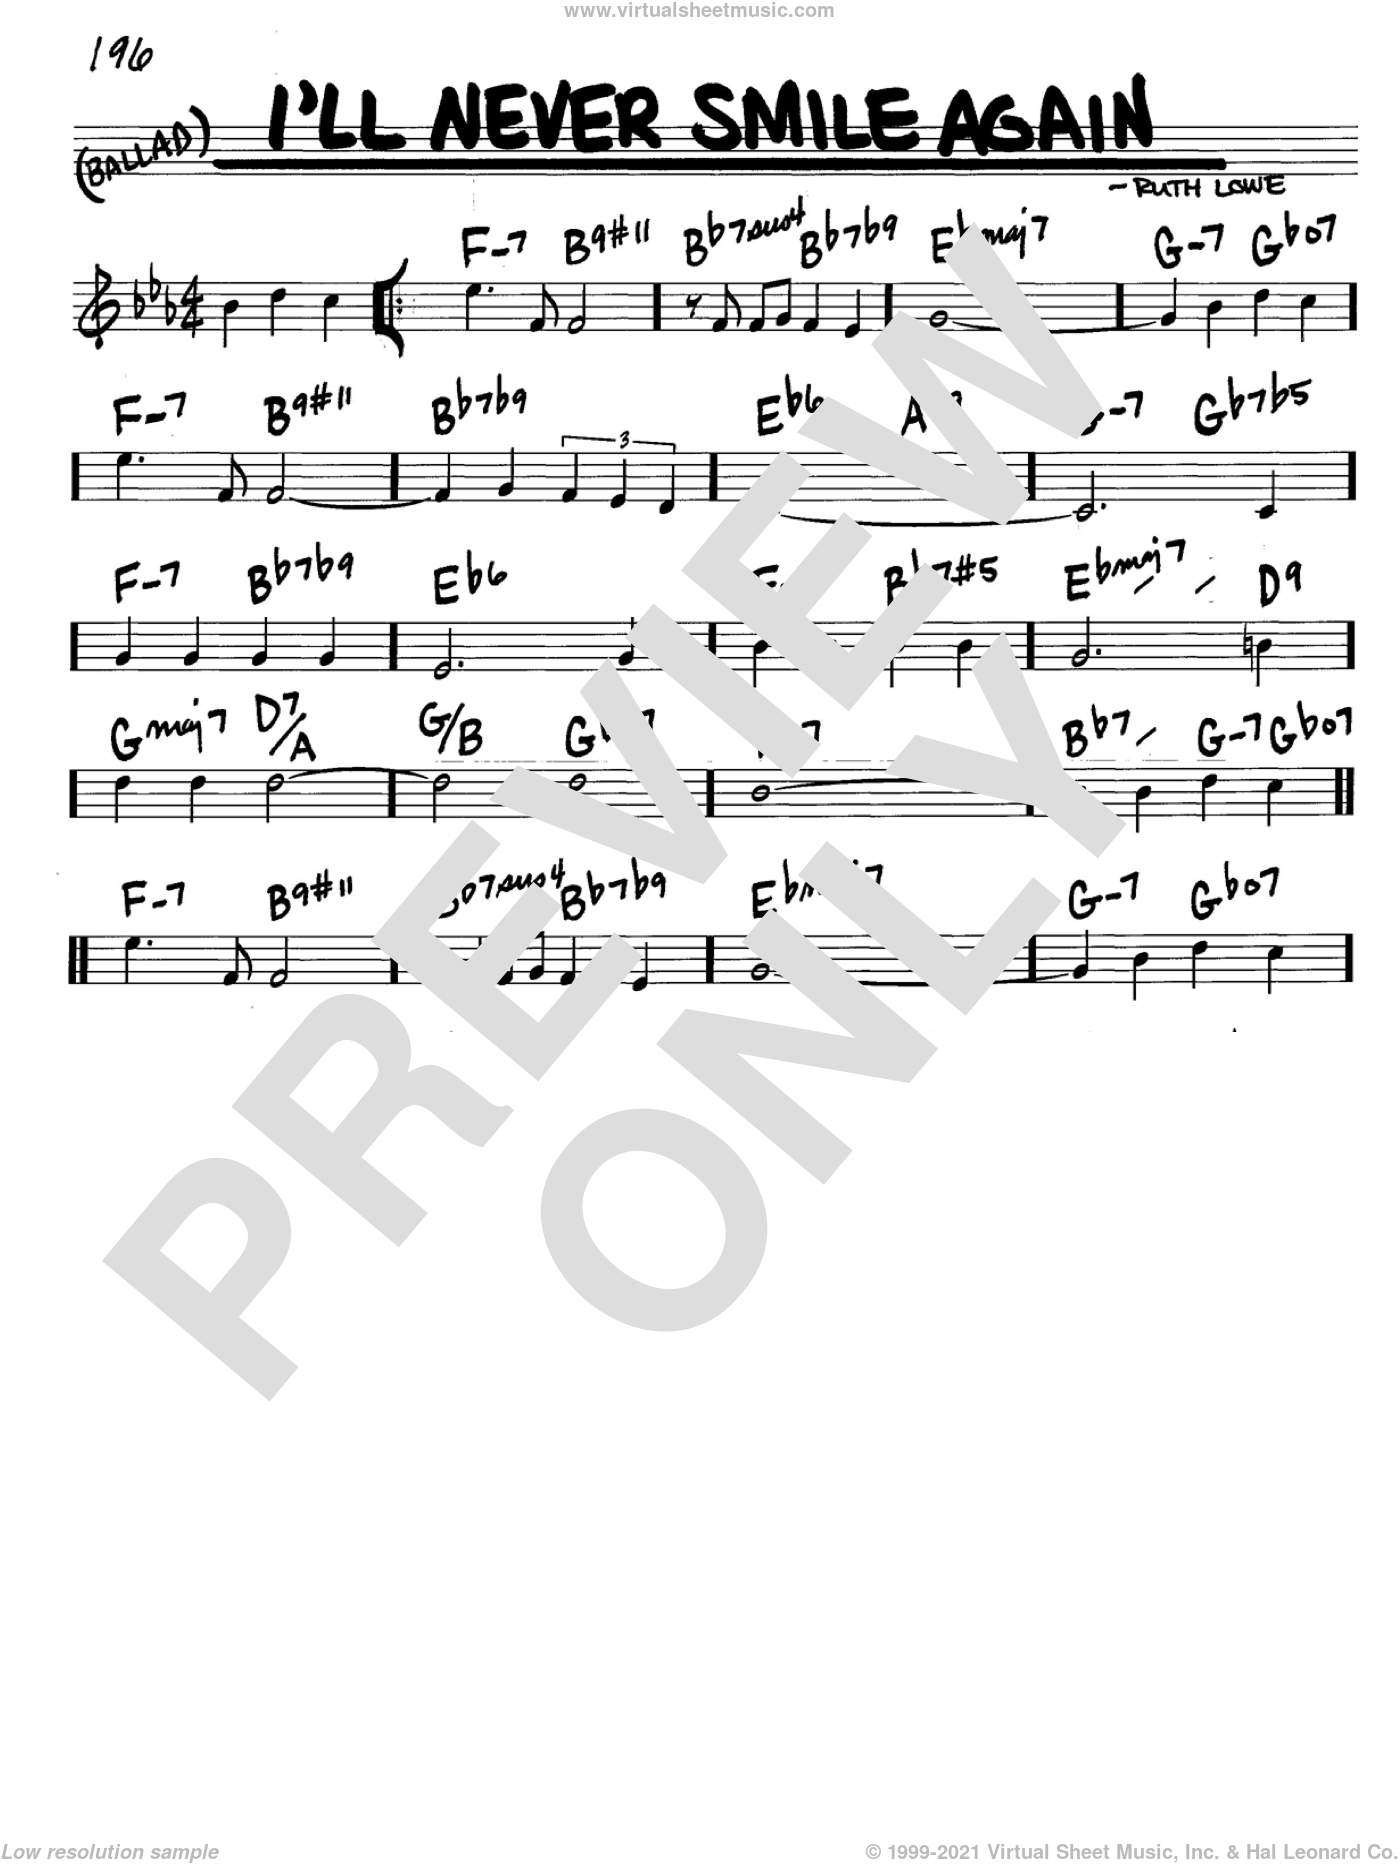 I'll Never Smile Again sheet music for voice and other instruments (C) by Ruth Lowe and Tommy Dorsey. Score Image Preview.